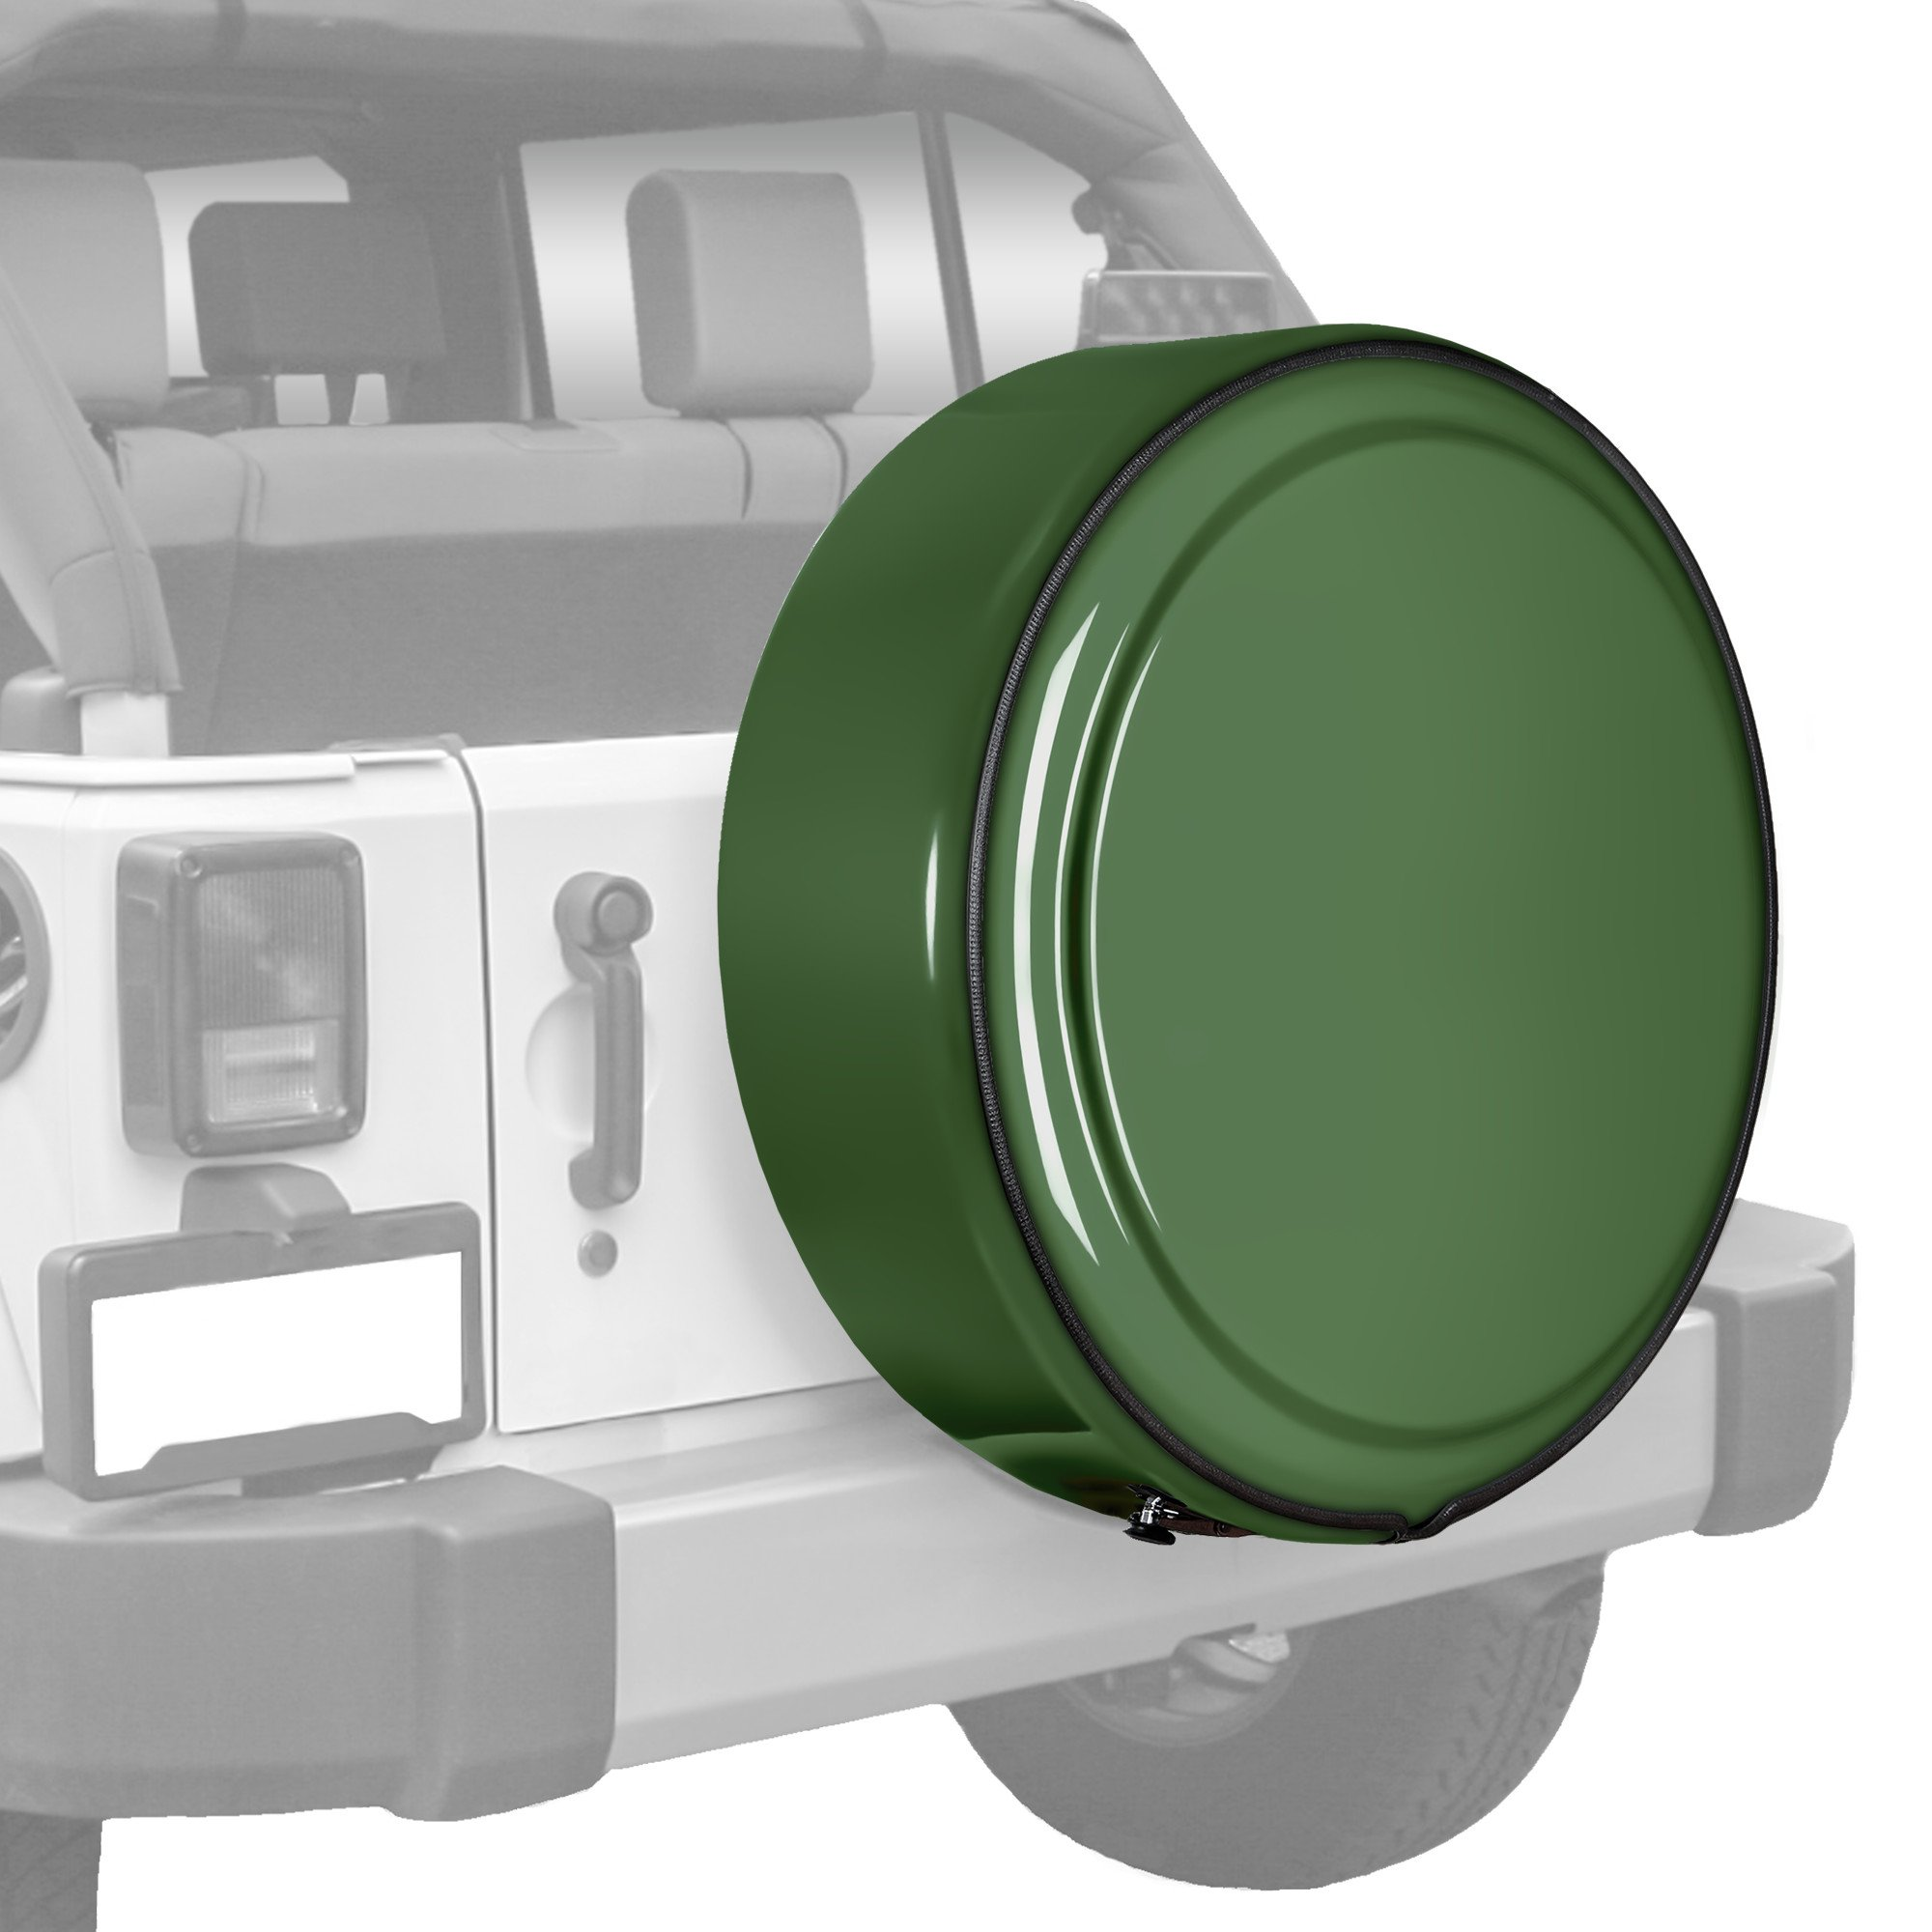 Jeep Wrangler JK - (Moab/X Edition) - 31.5'' Color Matched MasterSeries Hard Tire Cover - Sarge Green